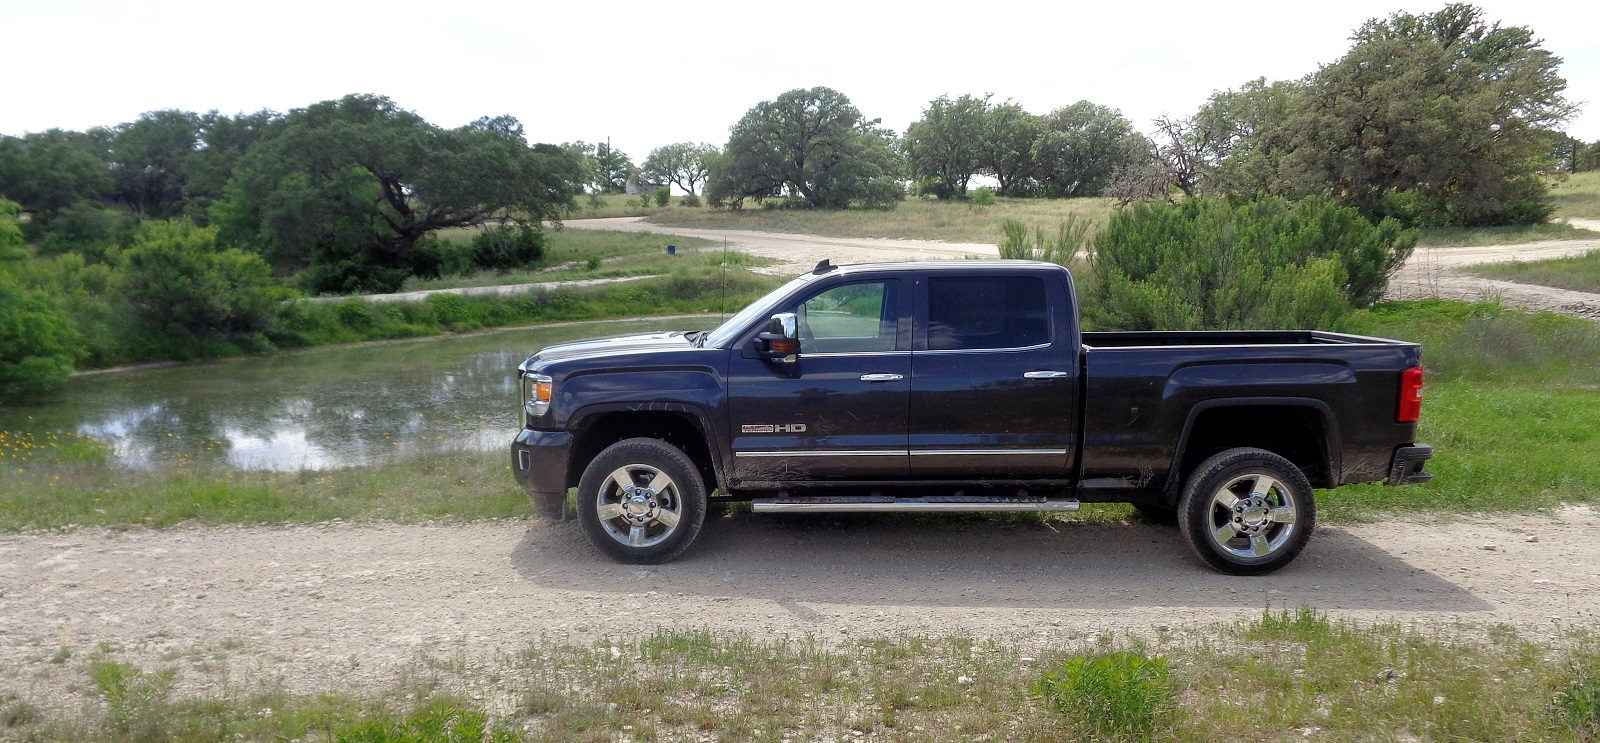 Review 2015 gmc sierra 2500hd all terrain chevroletforum my experience with the 2015 gmc sierra 2500hd all terrain as a whole was similar i did occasionally groan about something the truck was missing publicscrutiny Choice Image